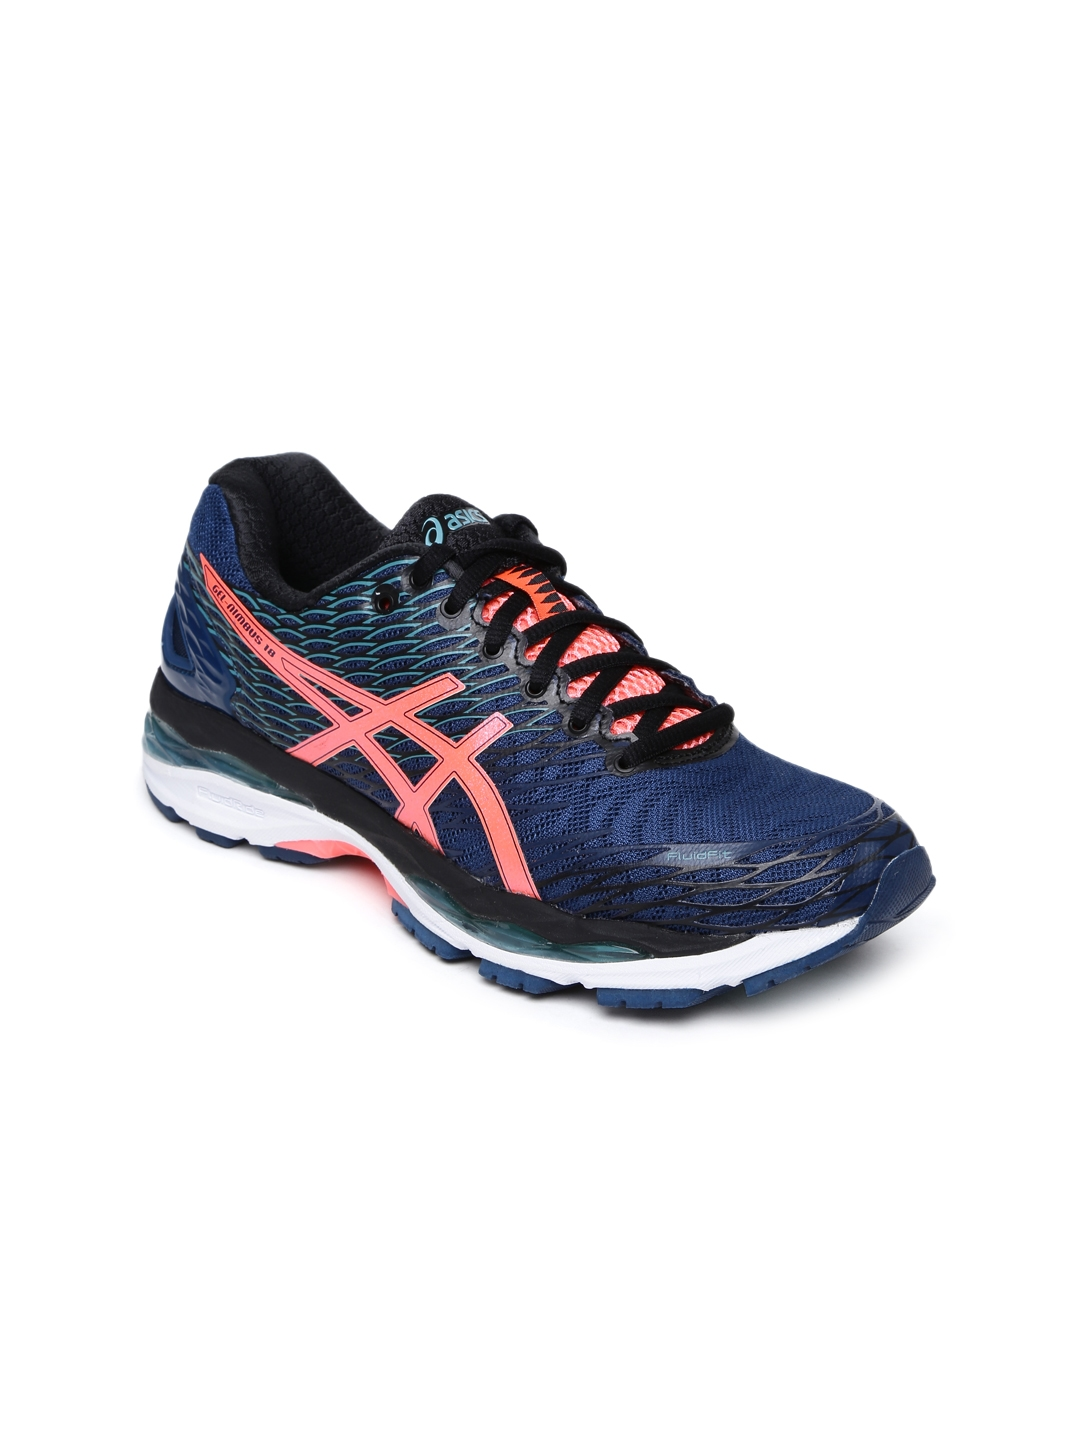 3fcbb210c9a1cf Buy ASICS Women Navy Blue GEL NIMBUS 18 Running Shoes - Sports Shoes ...